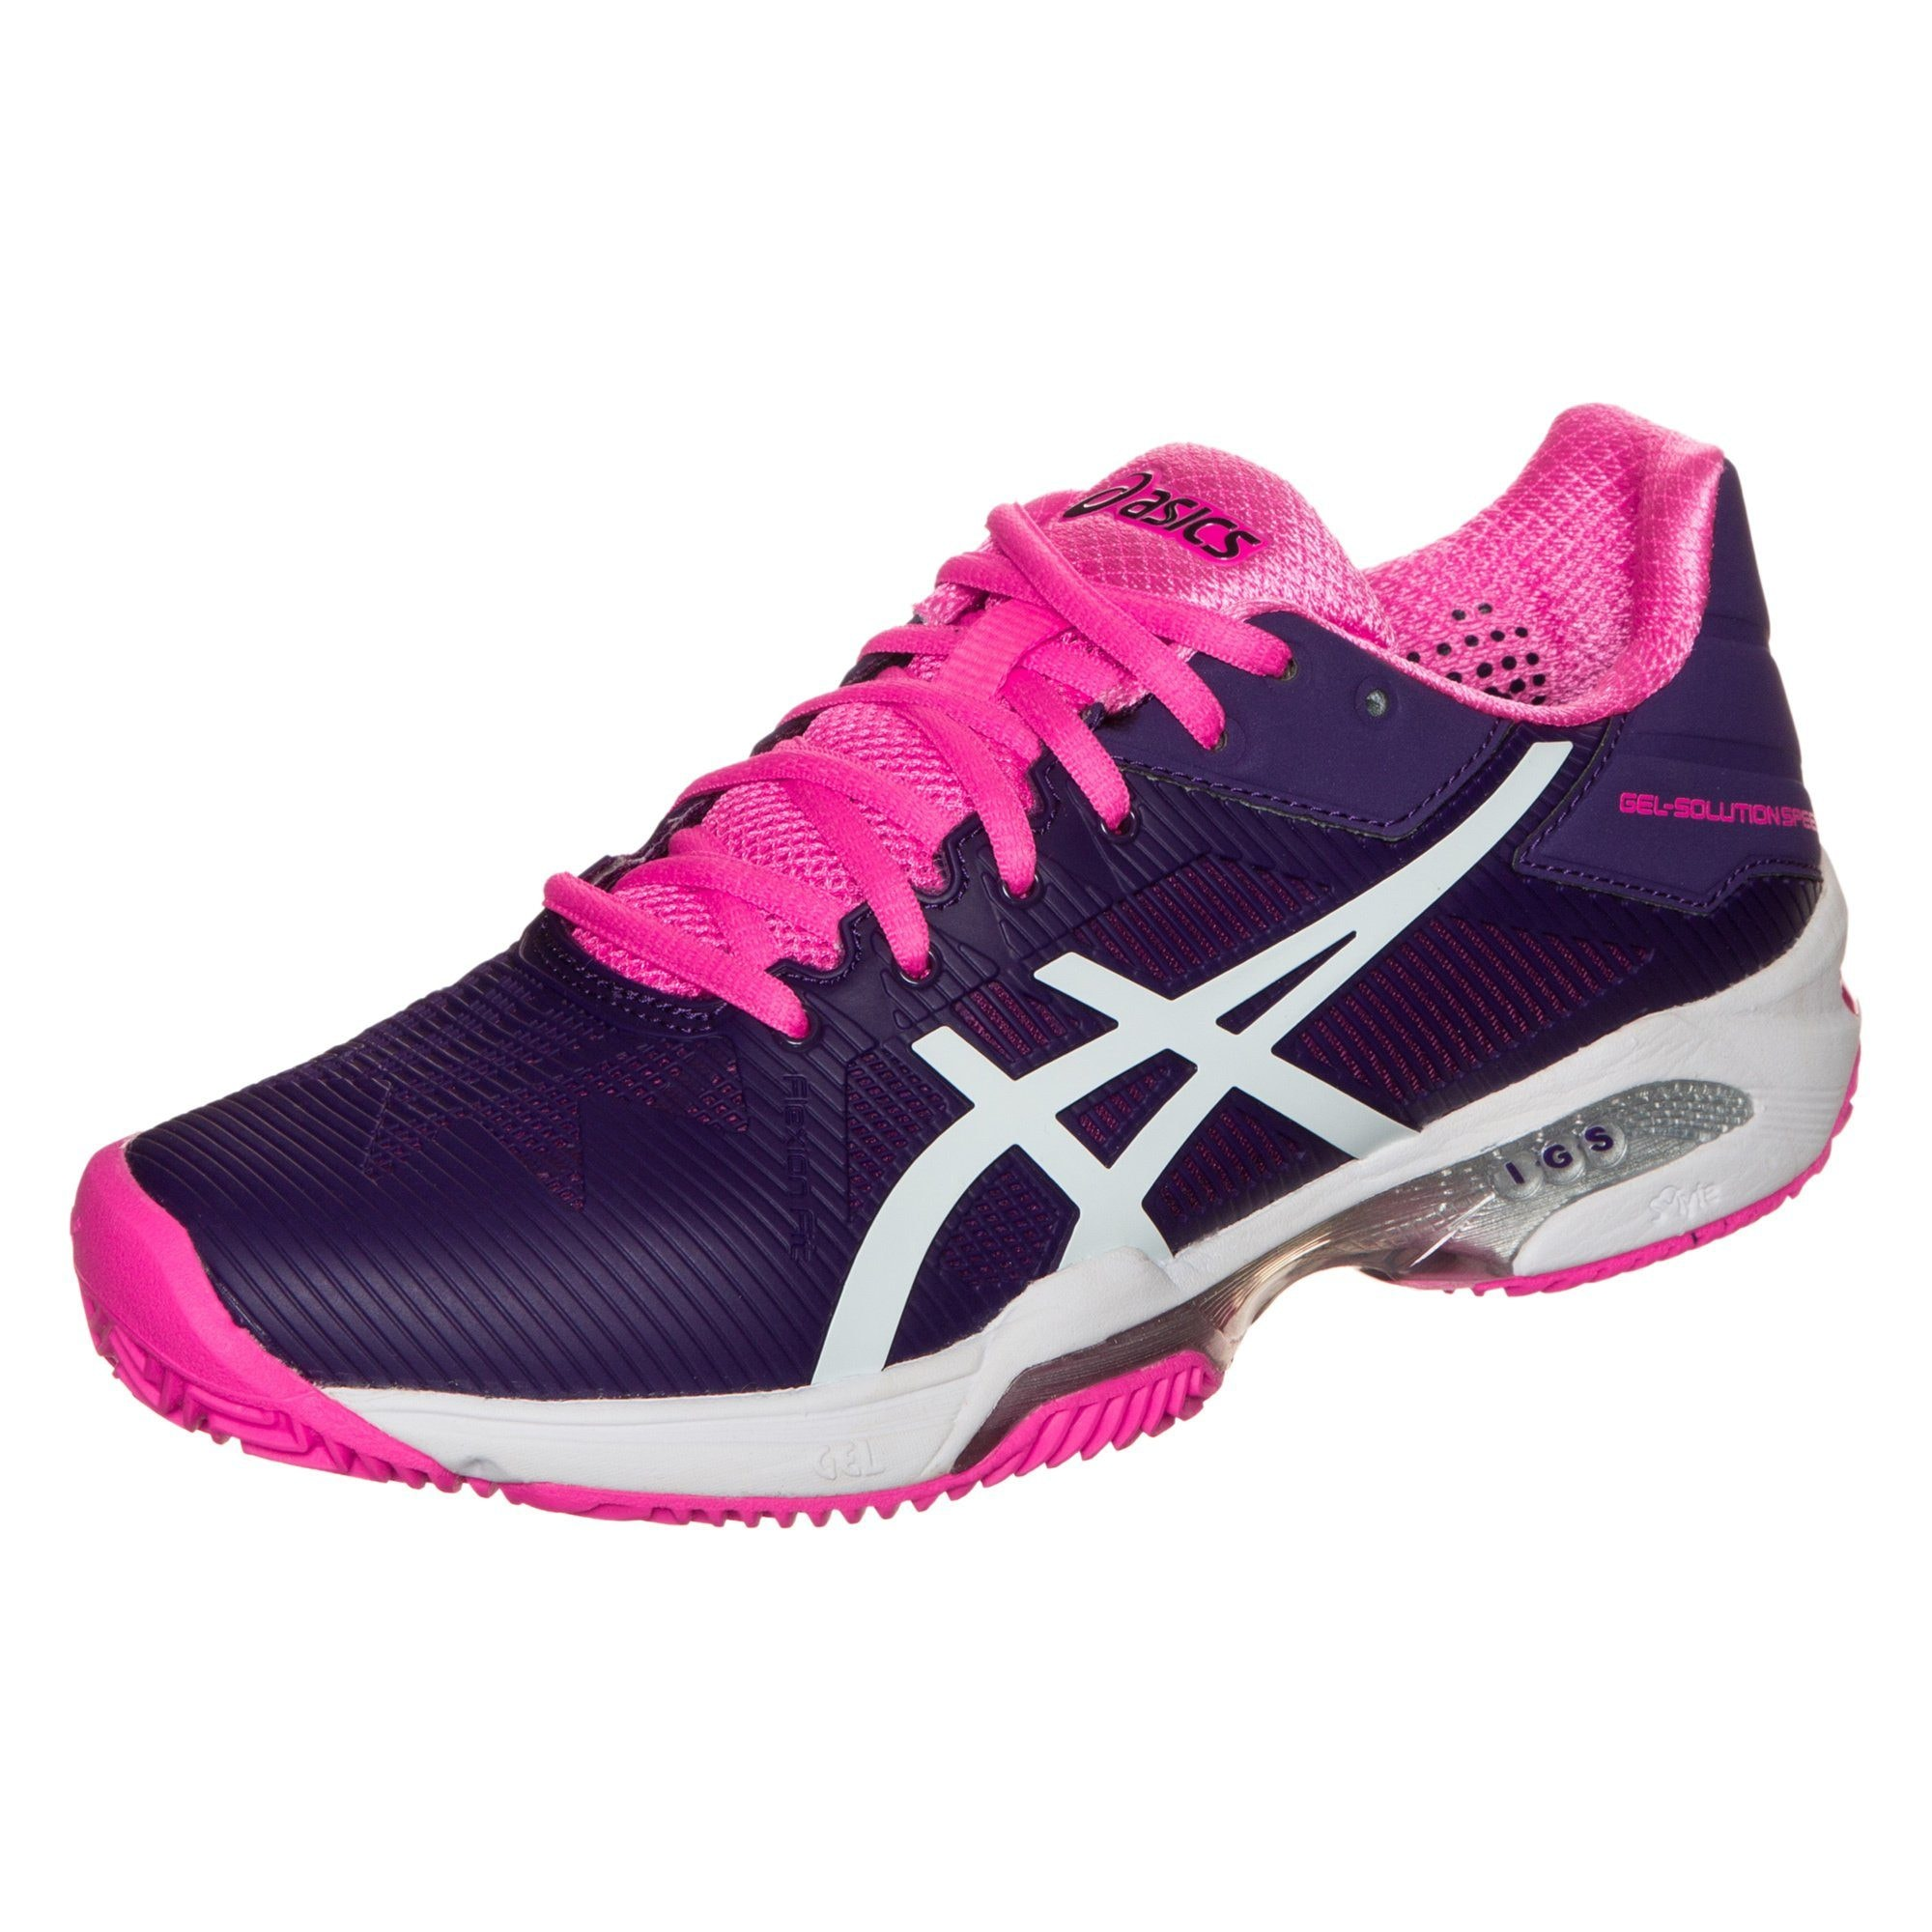 ASICS Gel-Solution Speed 3 Clay Tennisschuh Damen